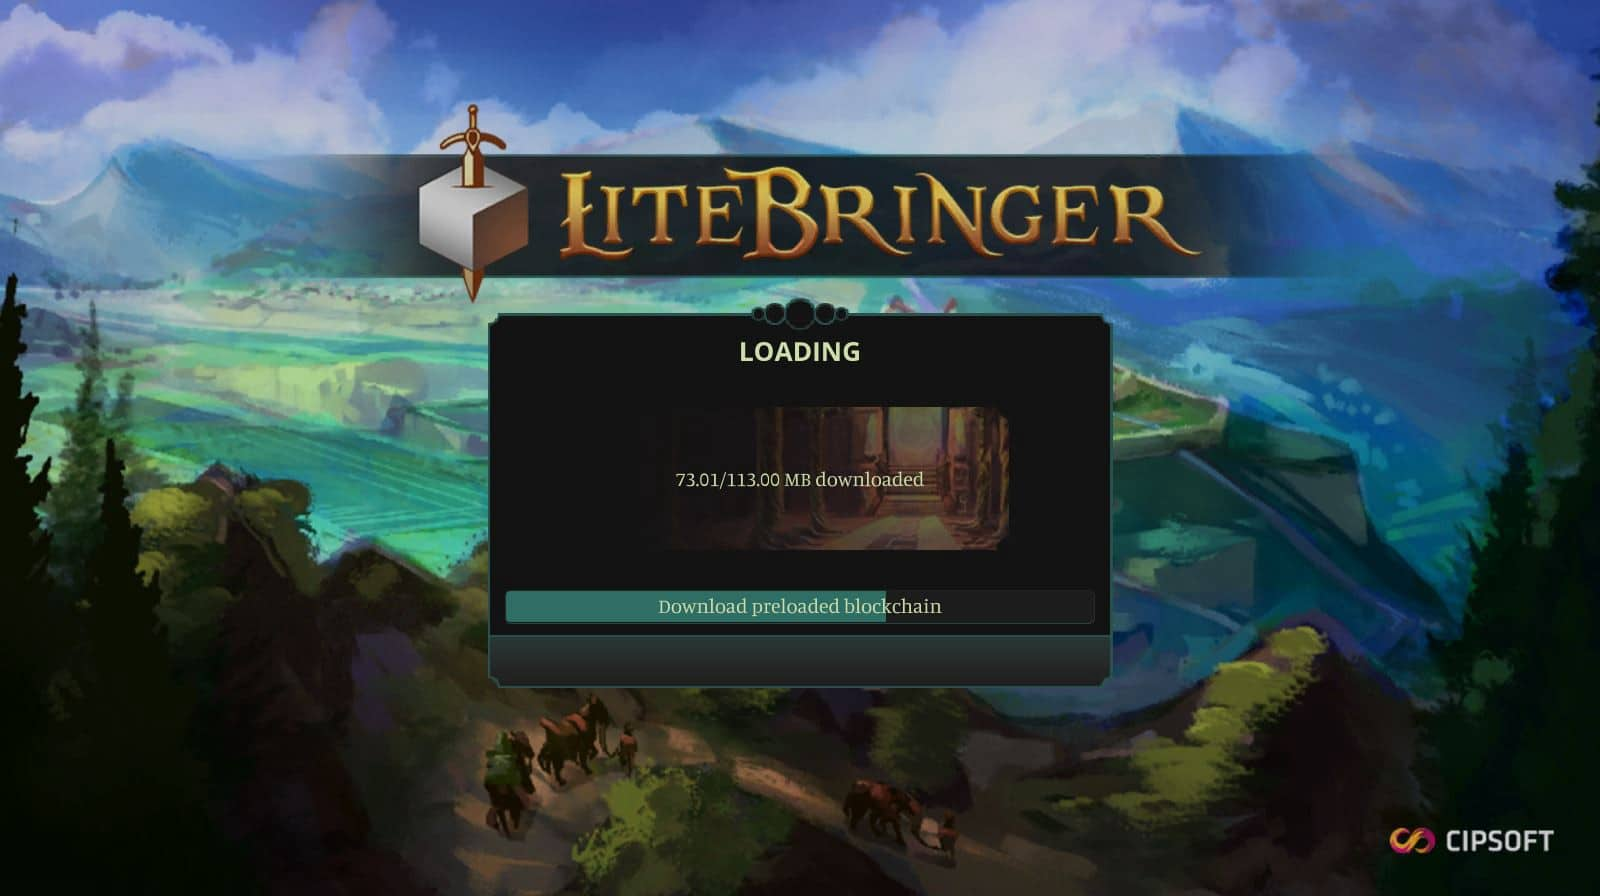 LiteBringer: the Litecoin blockchain game impossible to complete